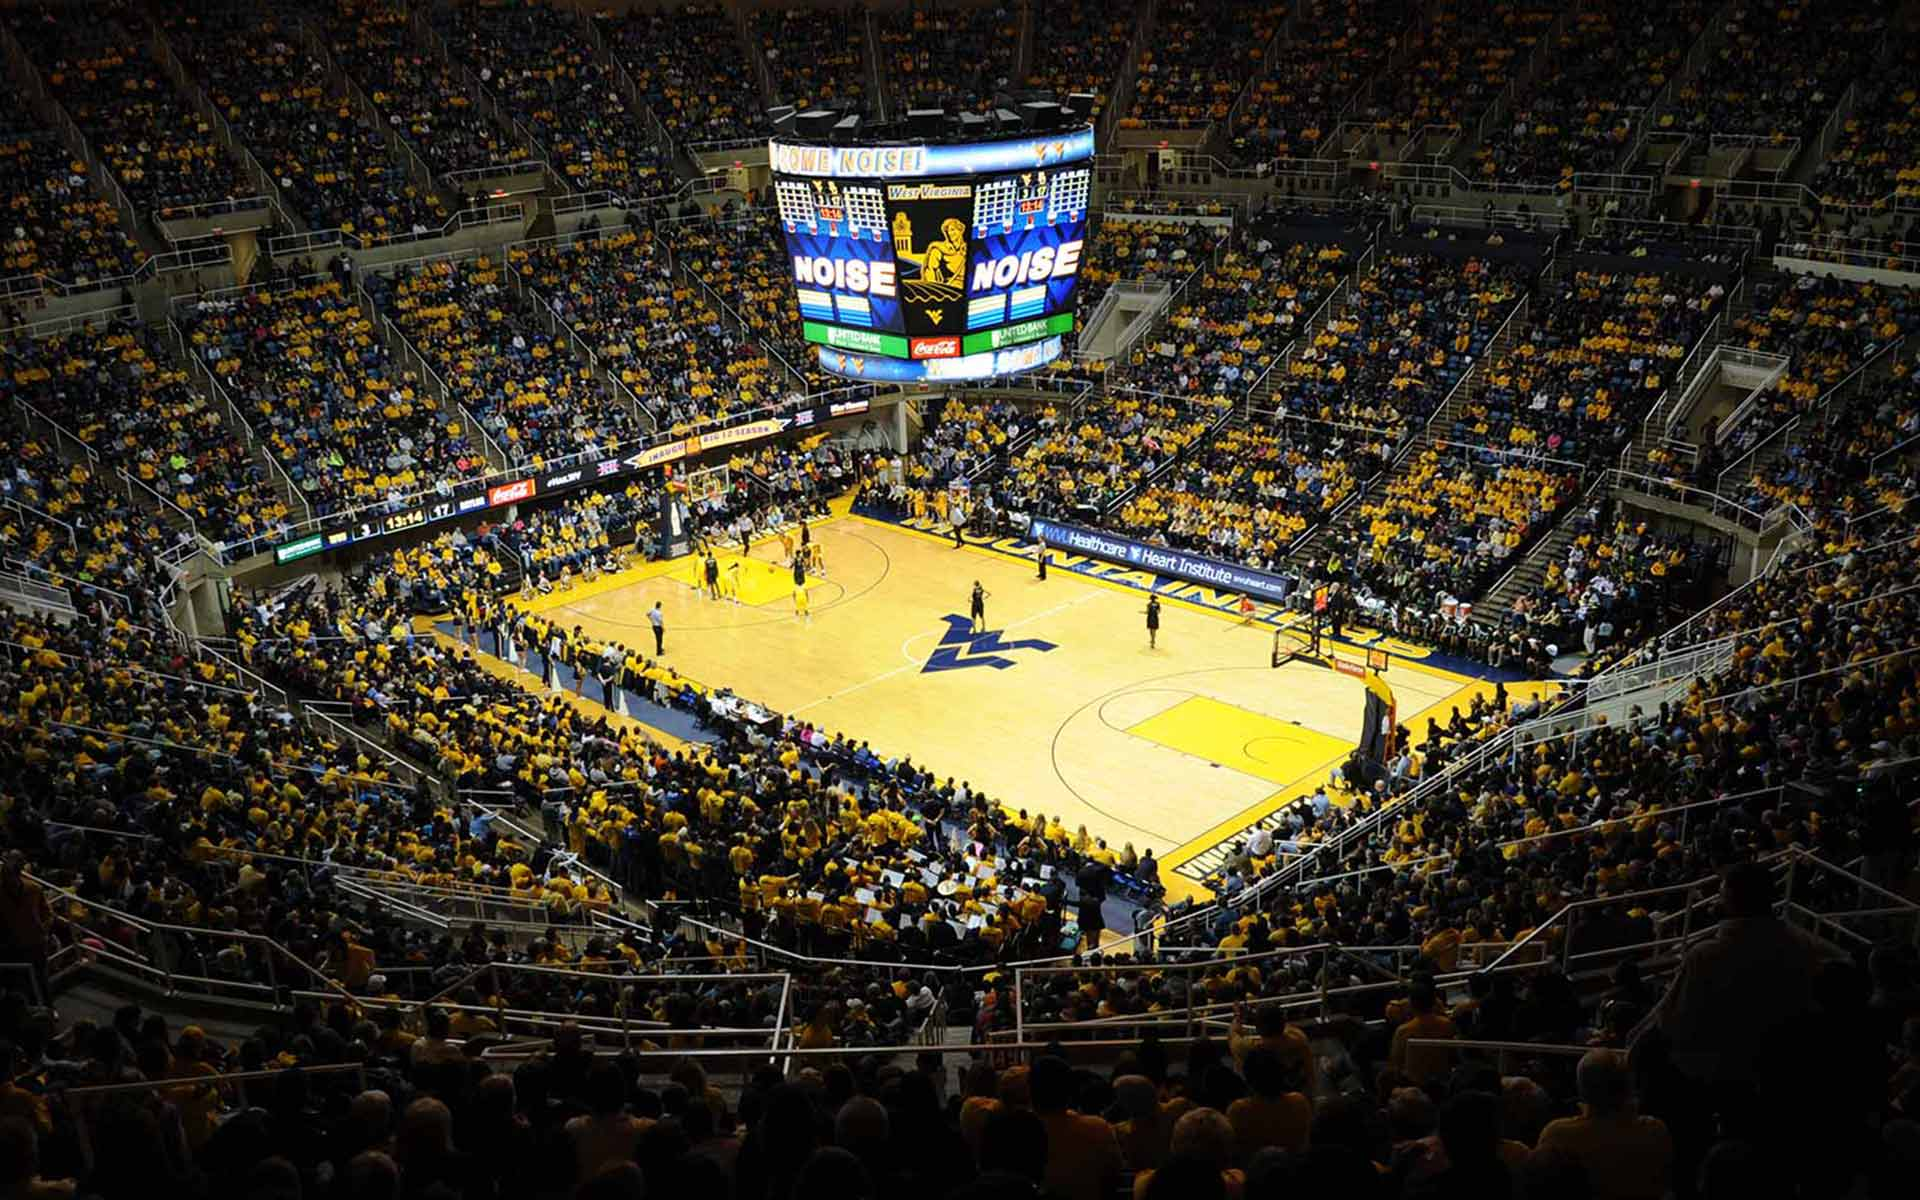 WVU basketball arena